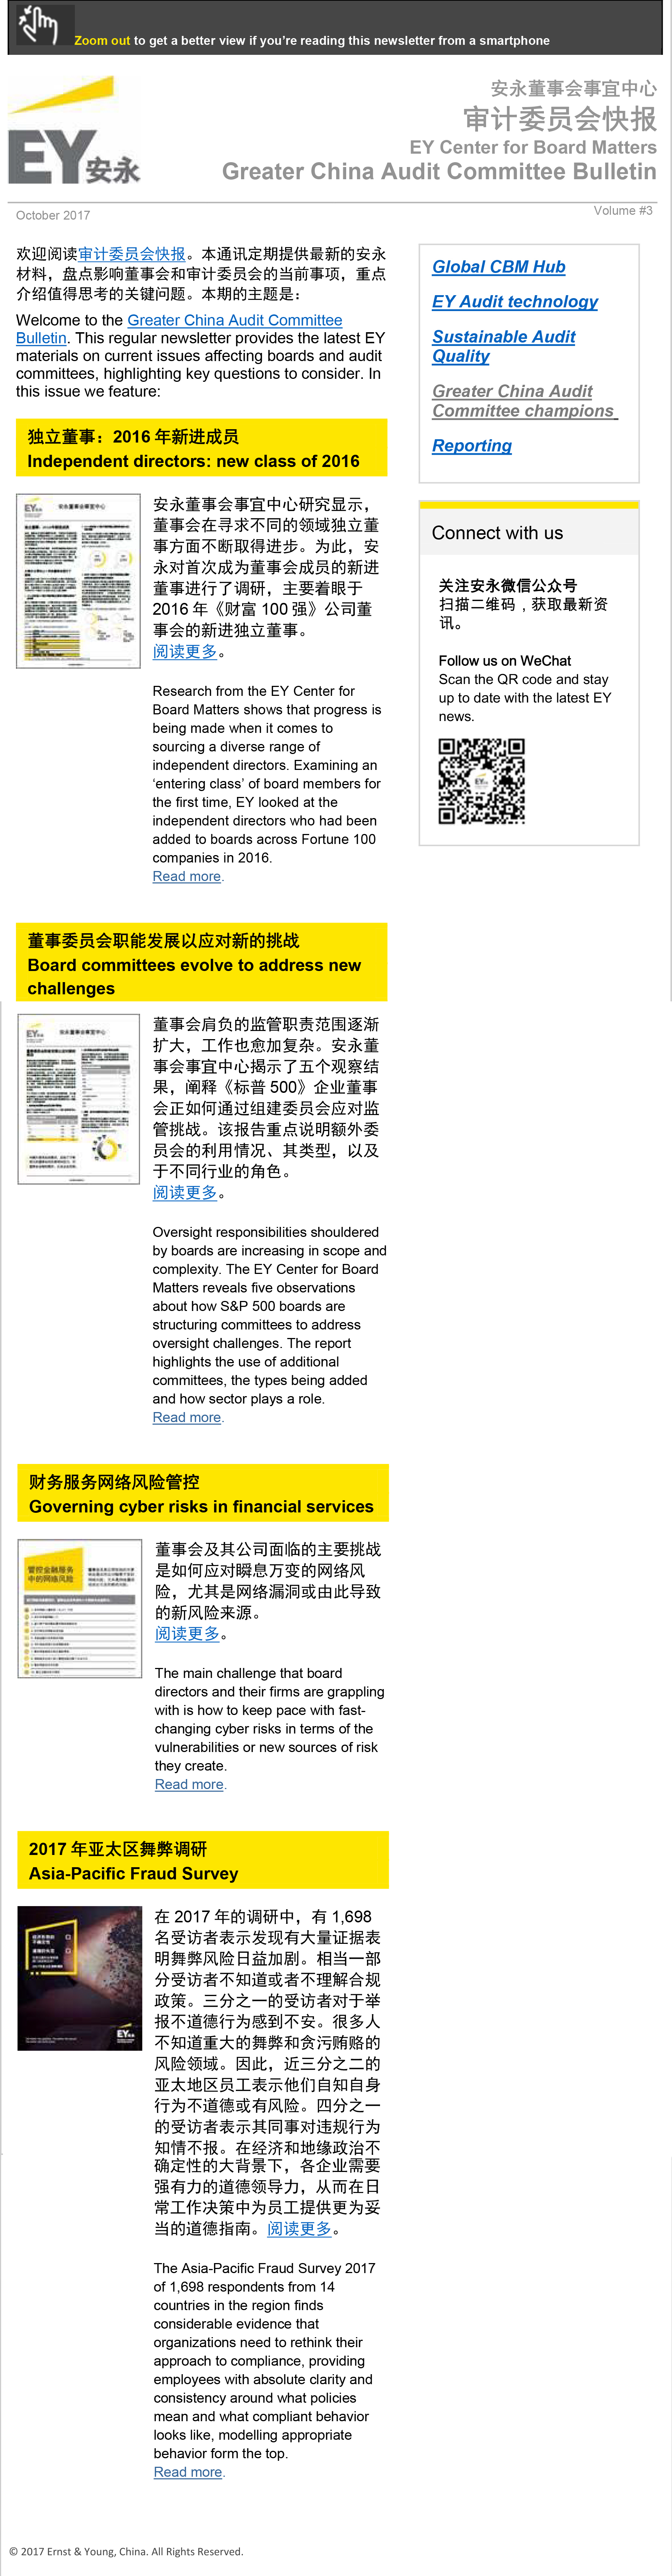 EY - Audit Committee Bulletin - EY - China